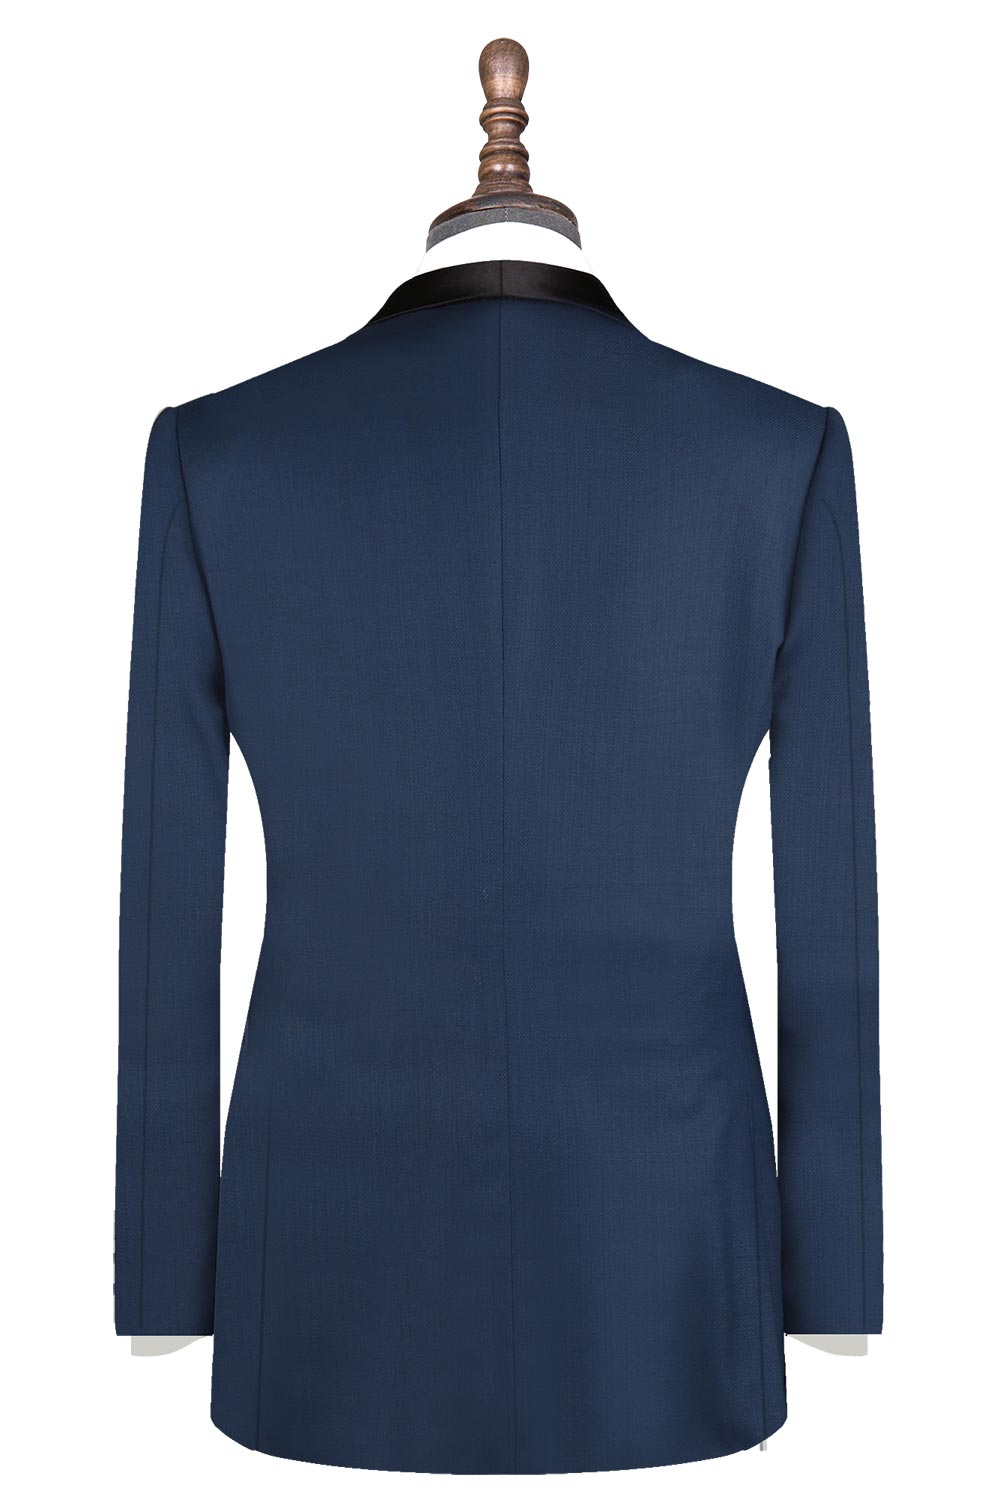 InStitchu Collection The Londonderry Jacket